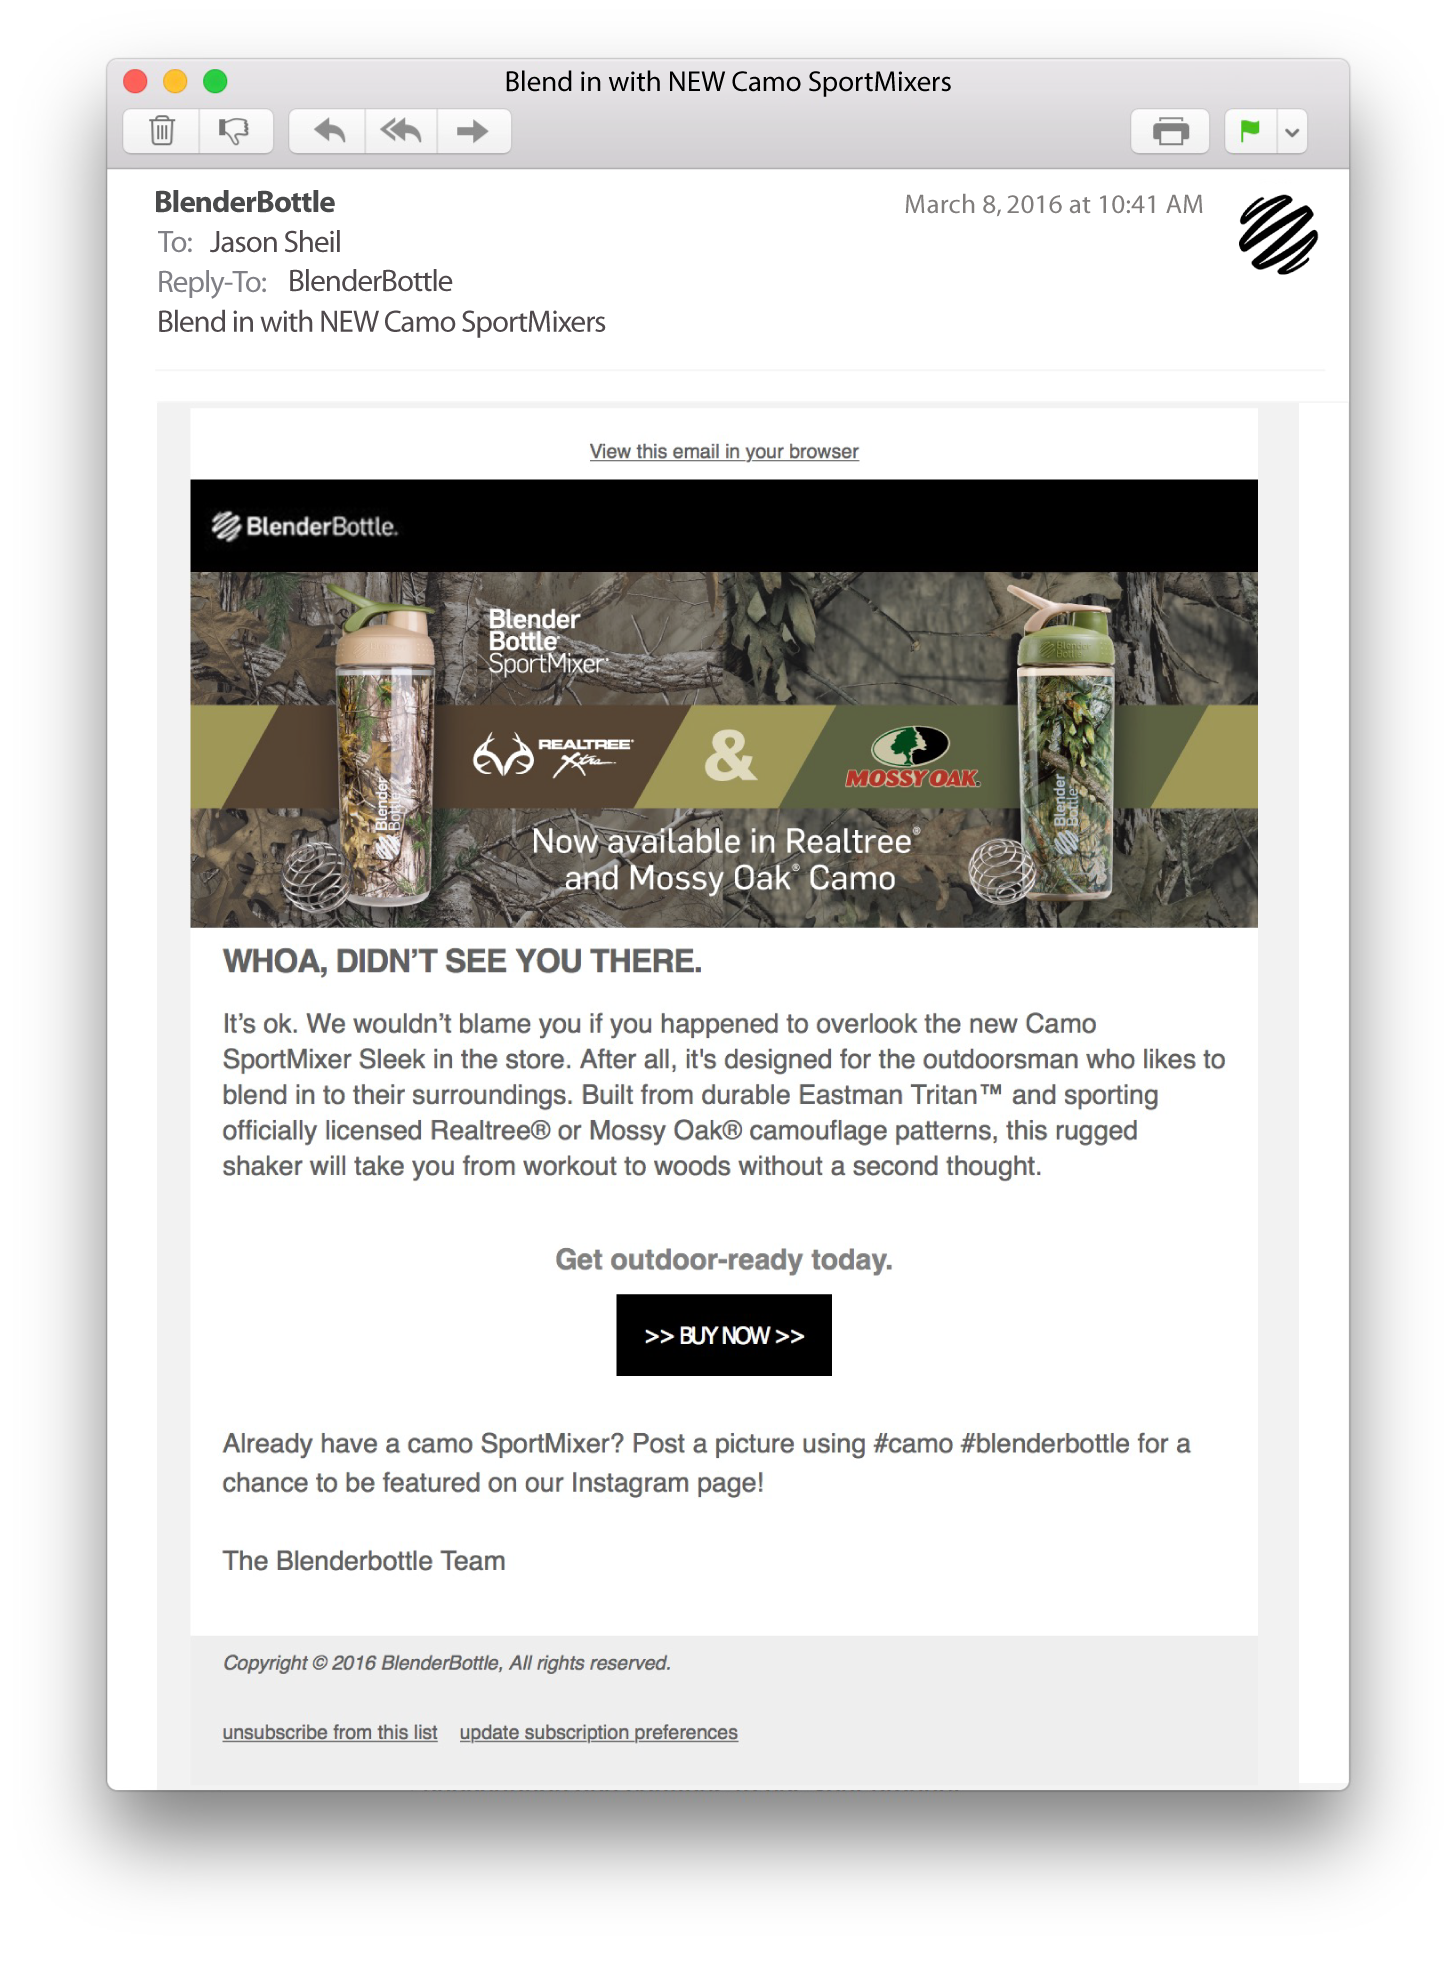 Email Copywriting for BlenderBottle's Camo SportMixers